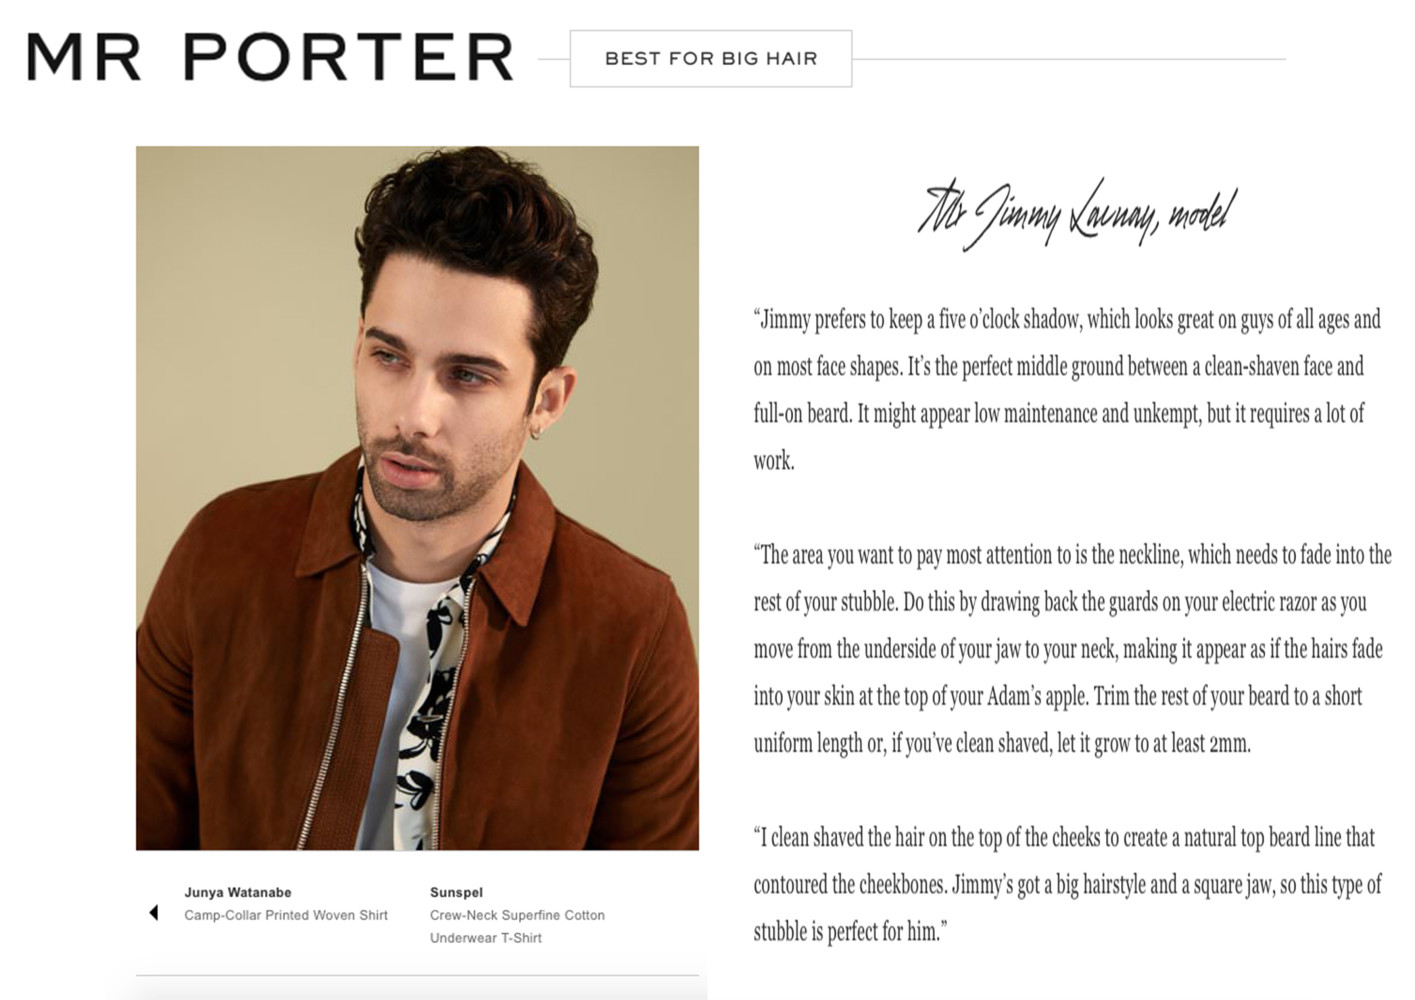 JIMMY FOR MR PORTER